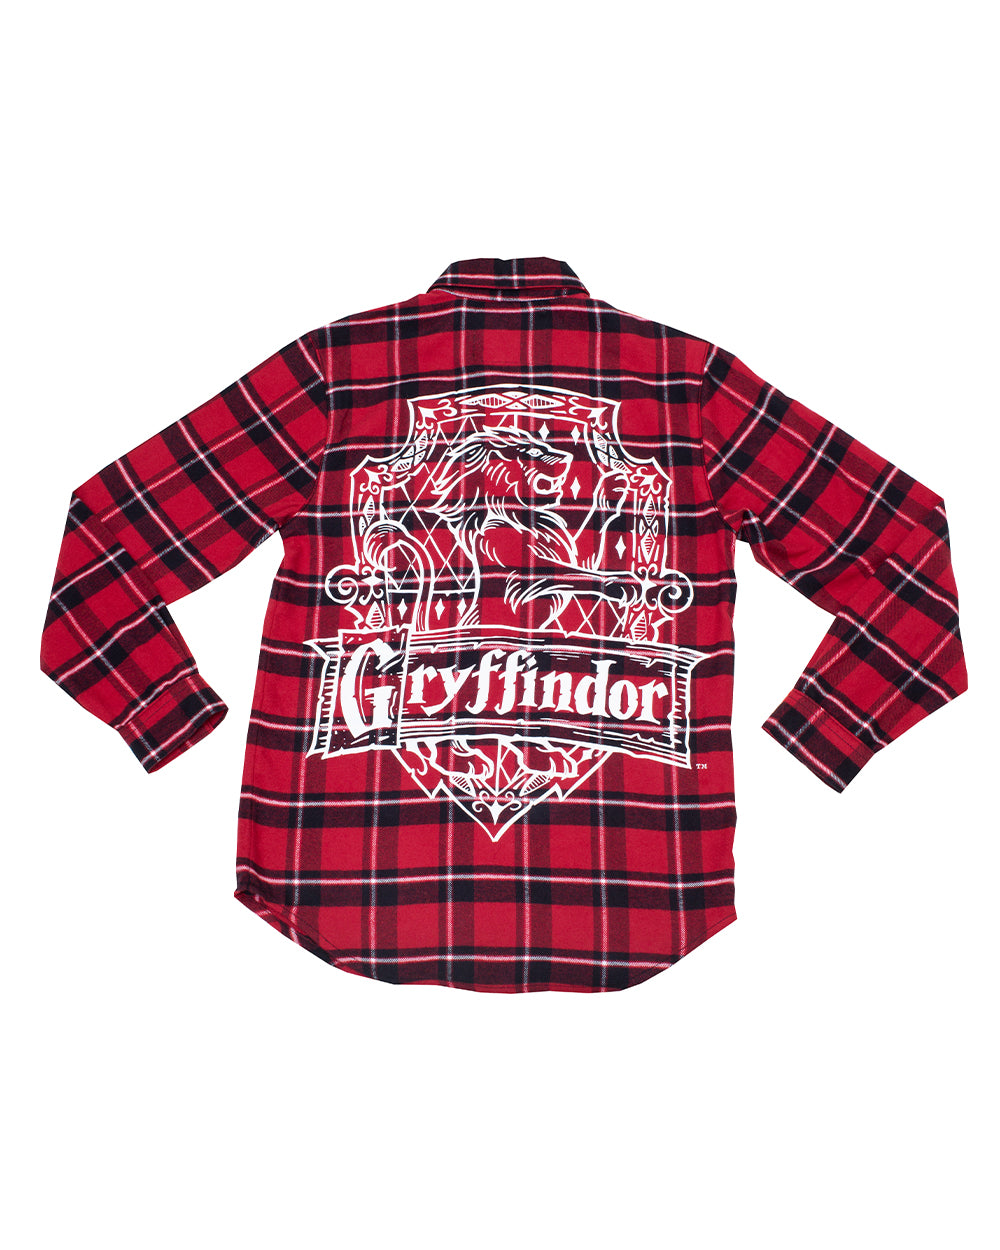 Cakeworthy Harry Potter Gryffindor House Unisex Flannel - The Pink a la Mode - Cakeworthy - The Pink a la Mode